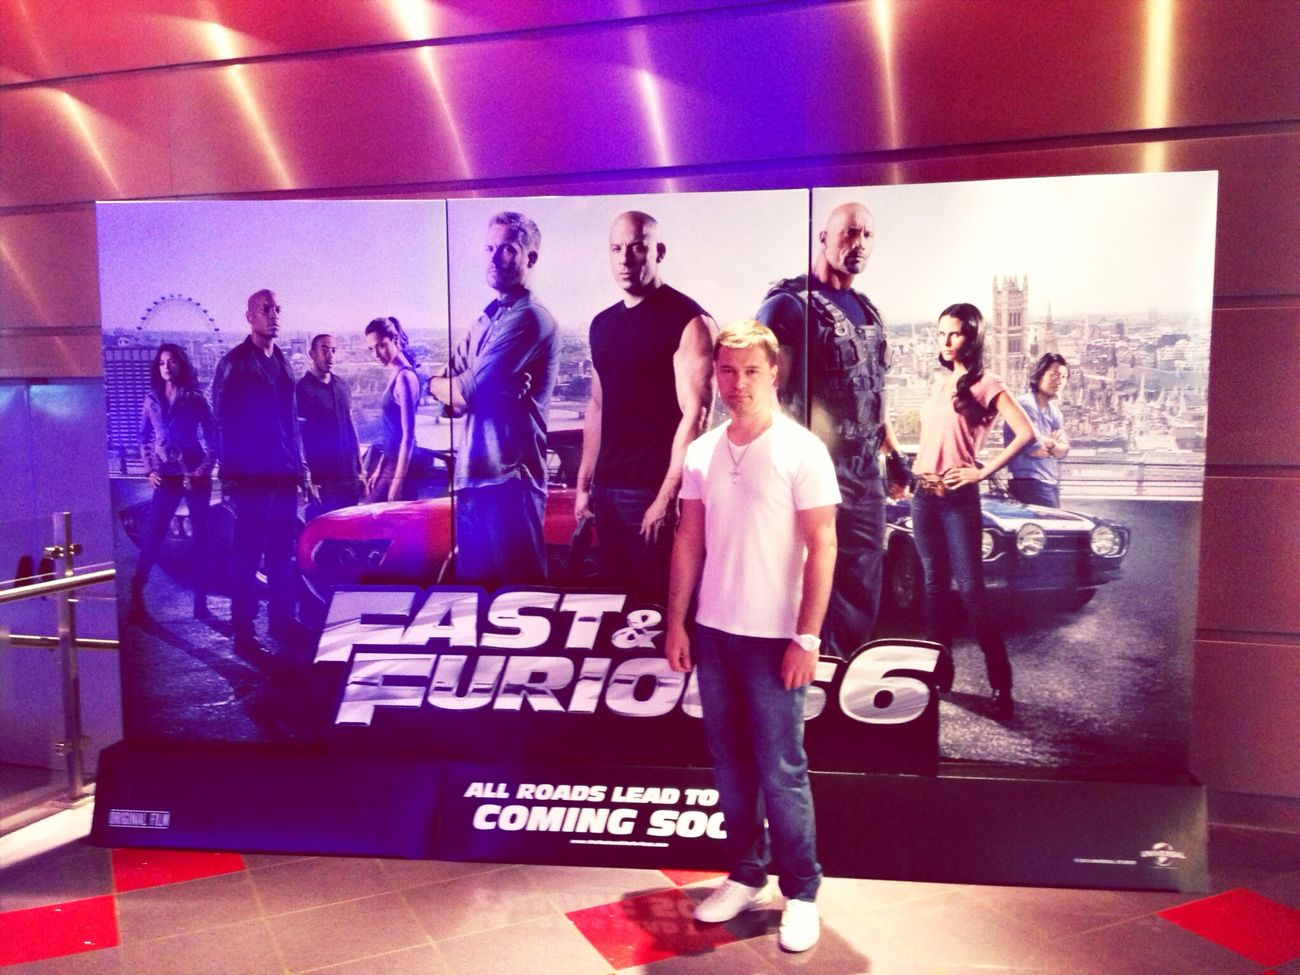 Me @ Cinema Fast&Furious6 Premiere 1 Year Ago